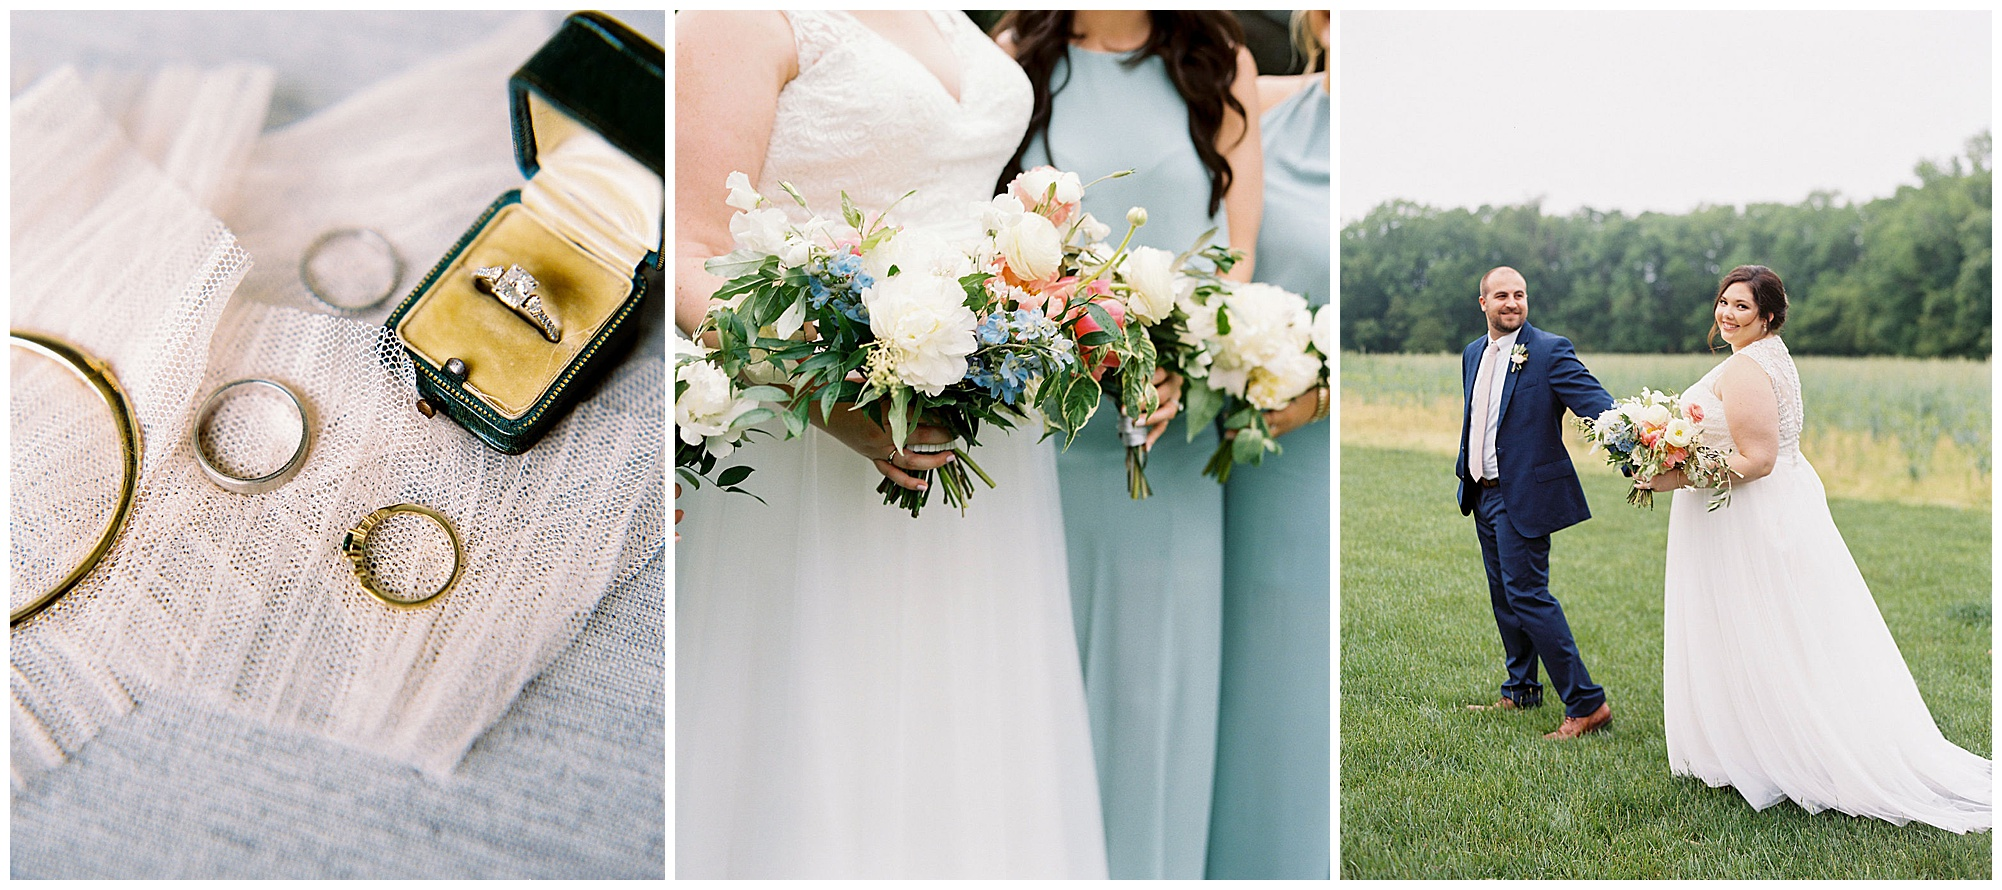 romantic and timeless wedding inspiration from pink and blue rainy day wedding on the eastern shore (spoiler: it's glorious and outdoor)